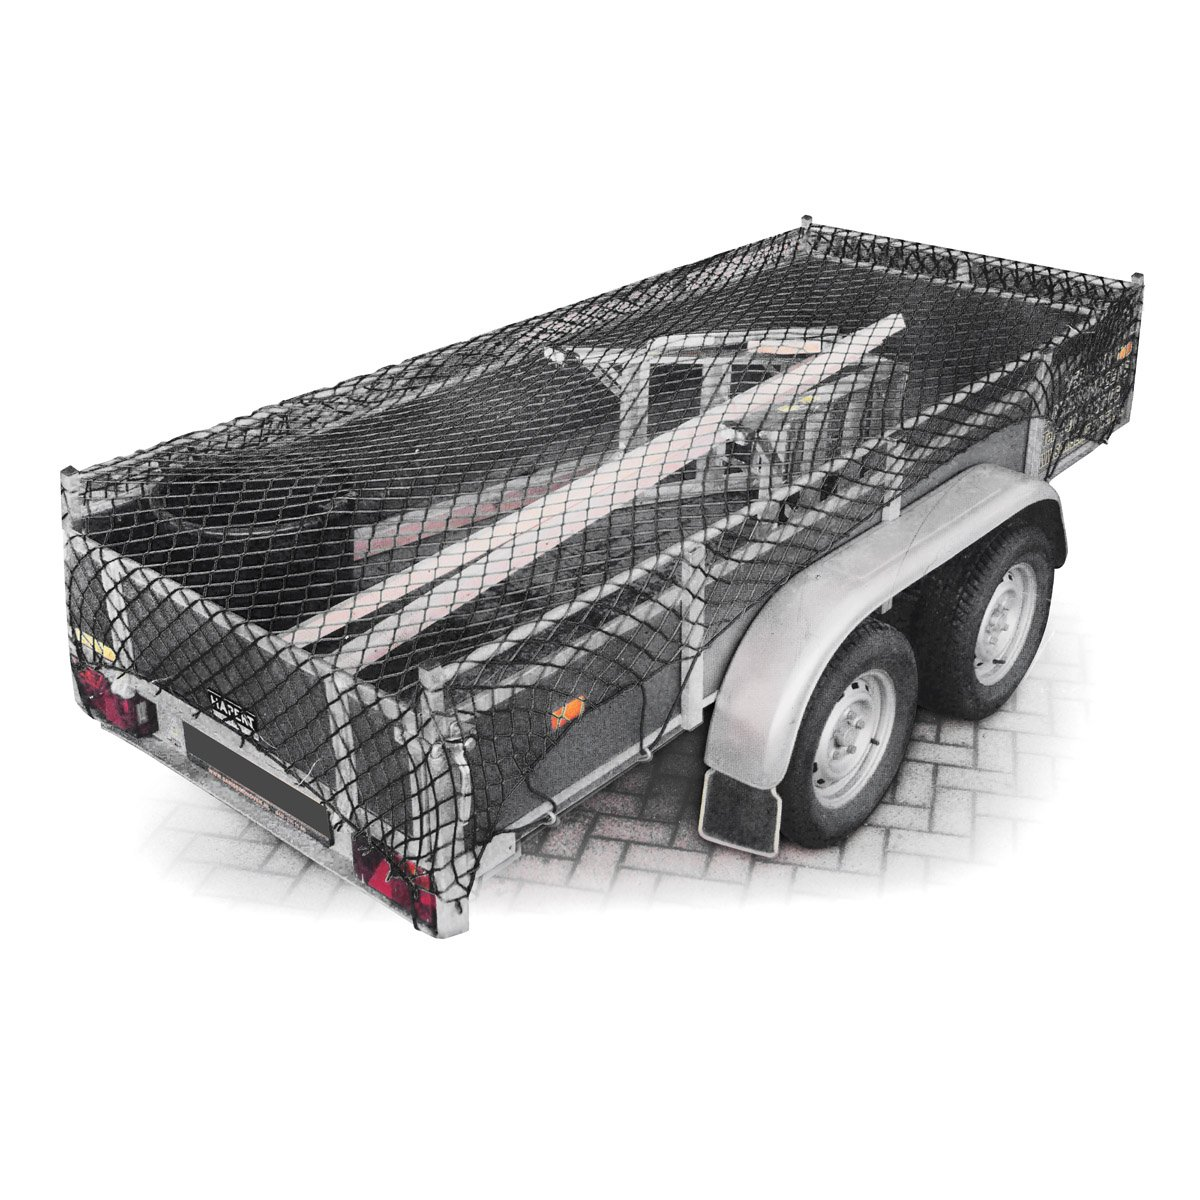 Relaxdays Elastic Trailer Cargo Luggage Net 3 X 2 meter